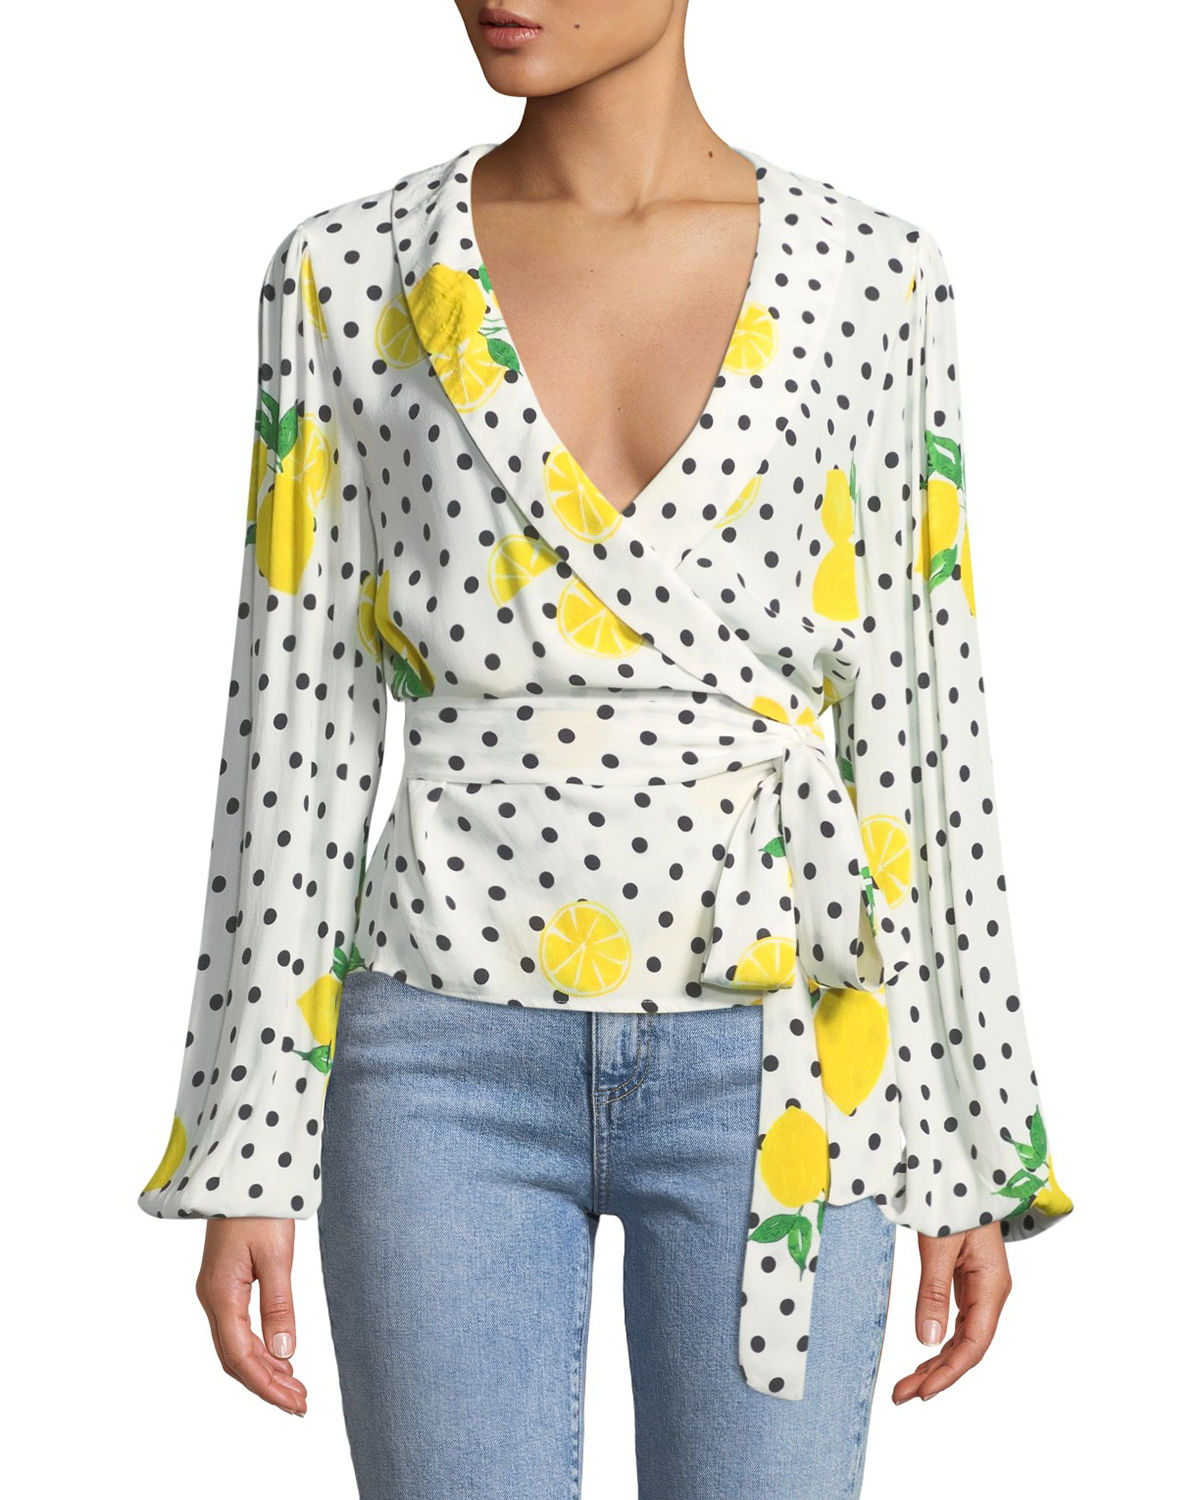 Mikayla Lemon-Polka Dot Wrap Blouse